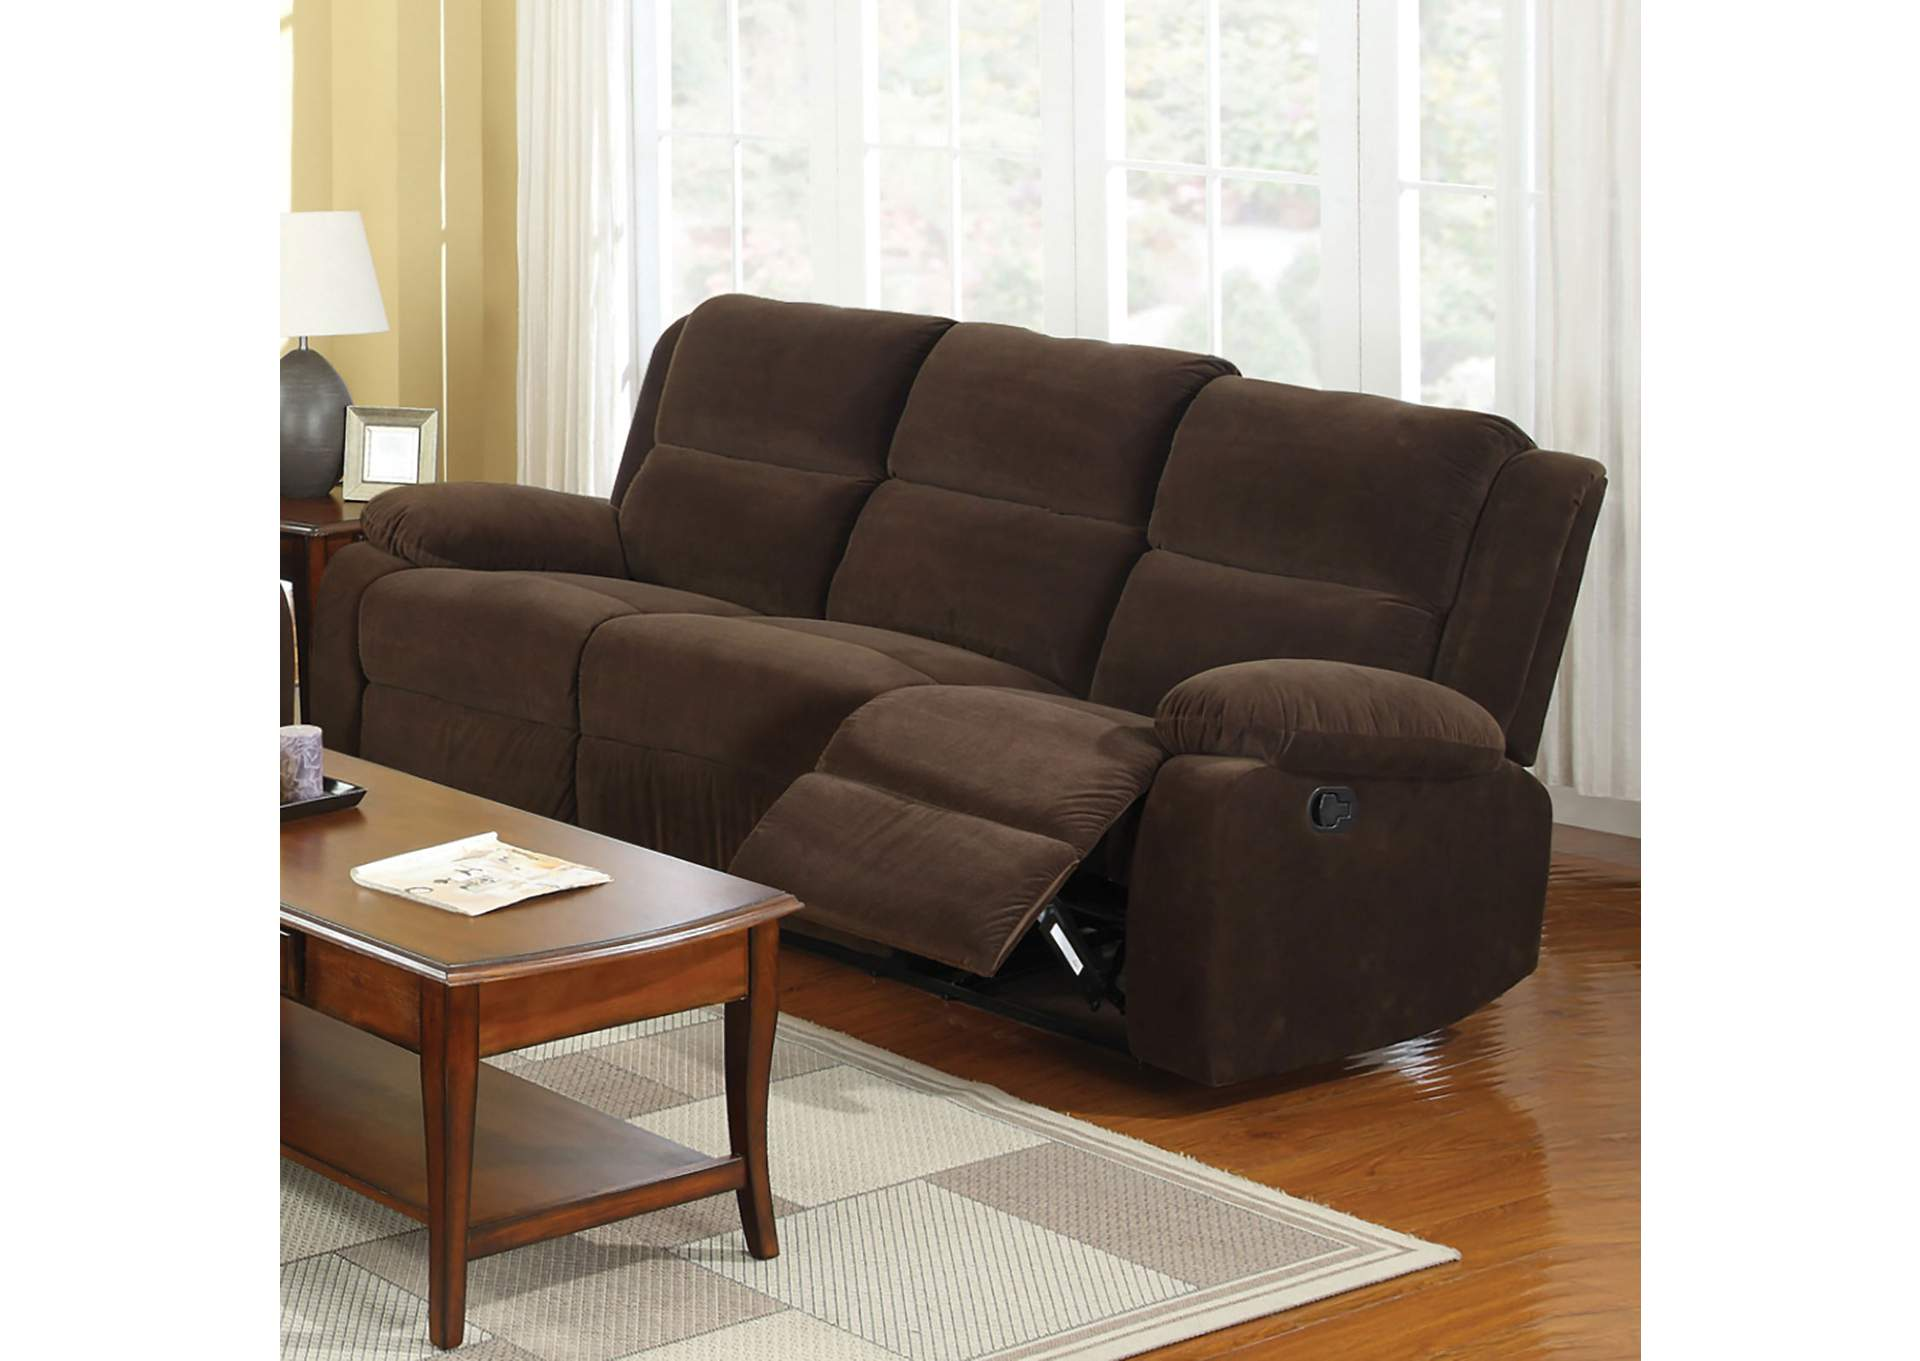 252868 Haven Dark Brown Sofa w/2 Recliners